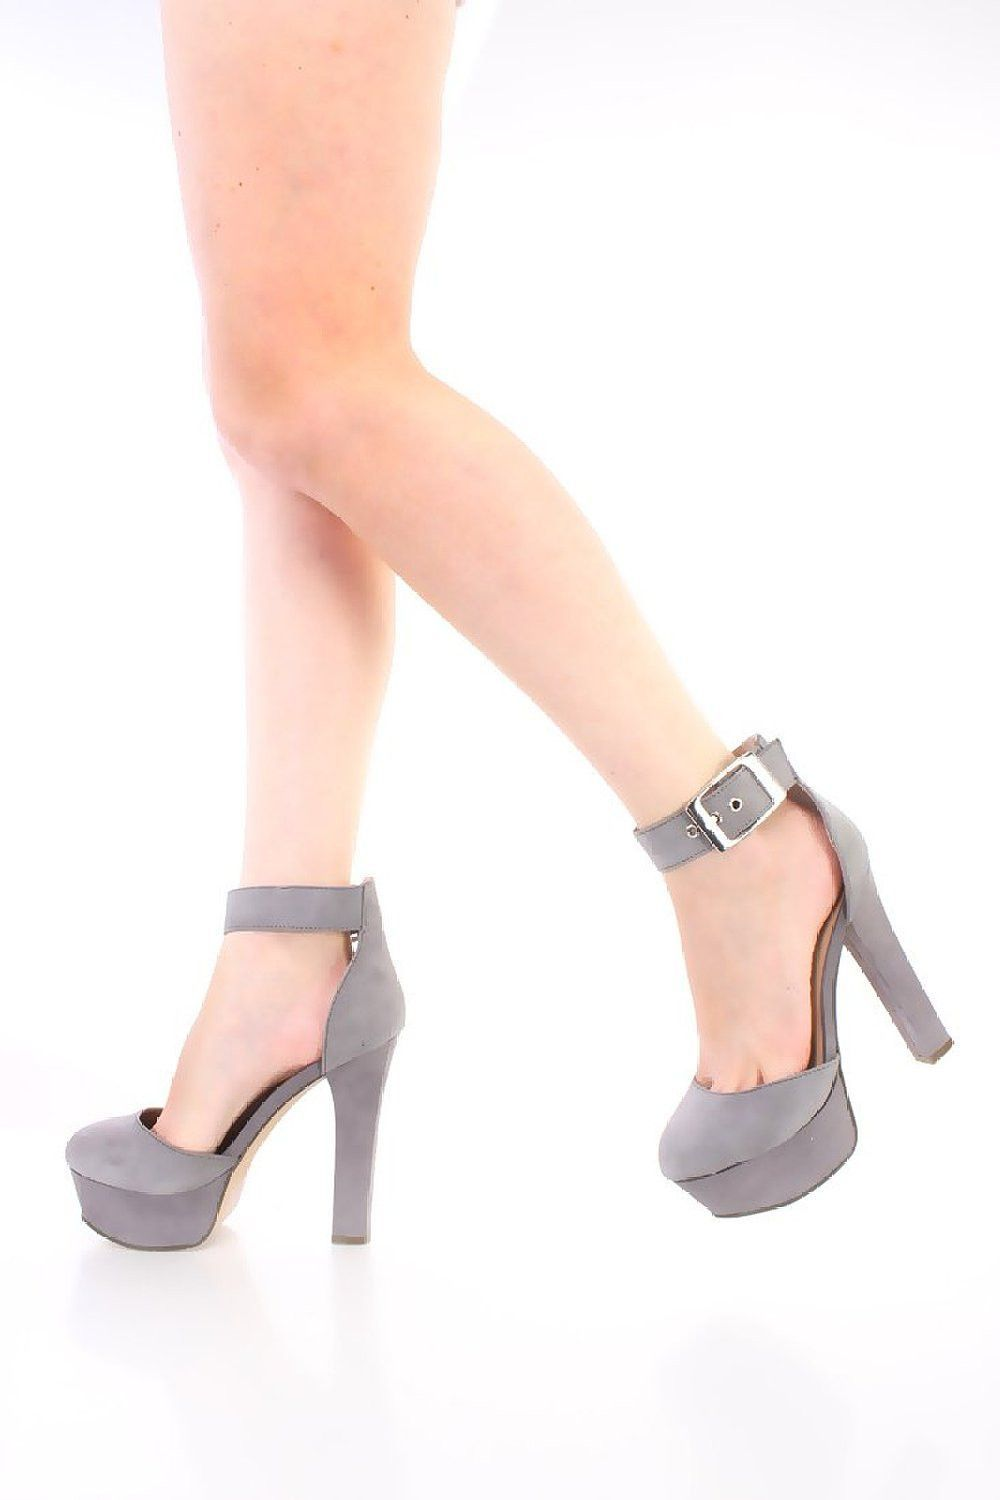 6ff08ed80a27 Grey Closed Toe Platform Chunky High Heels Faux Suede